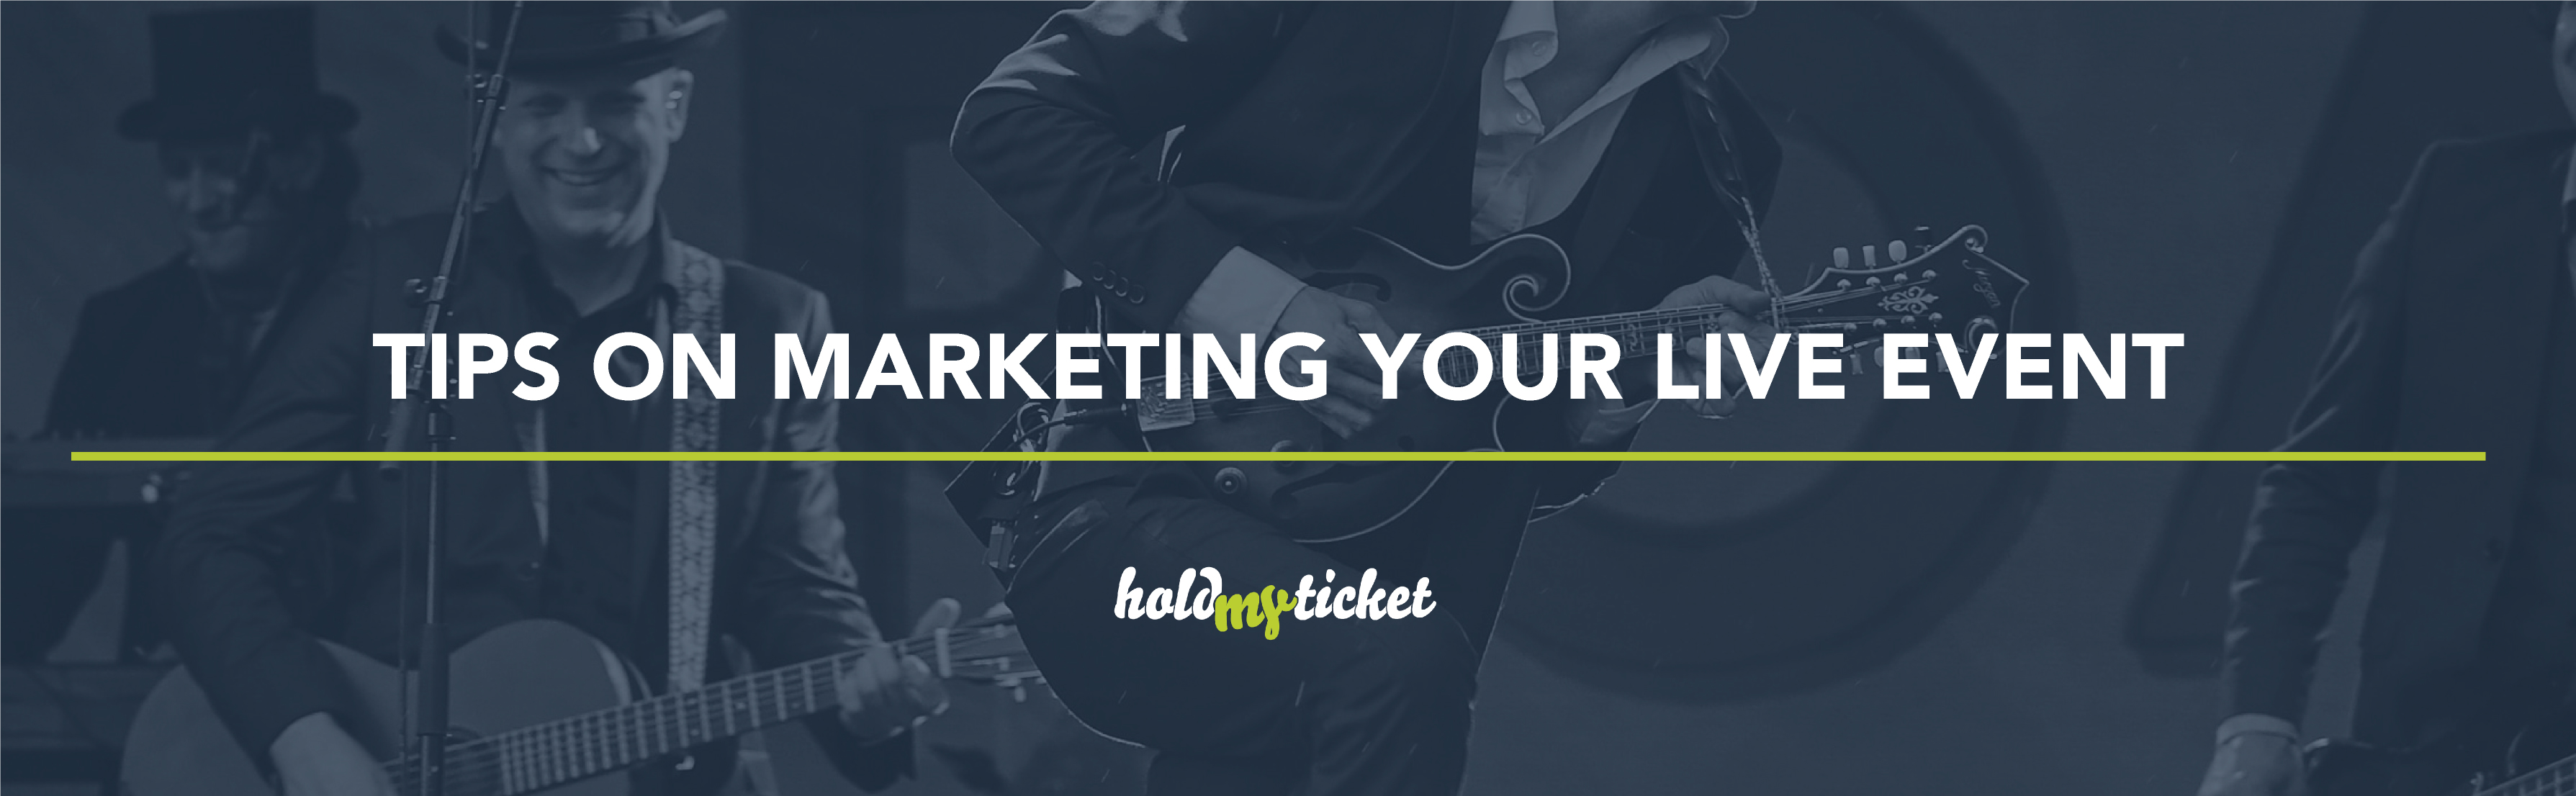 tipsonmarketing_holdmyticket